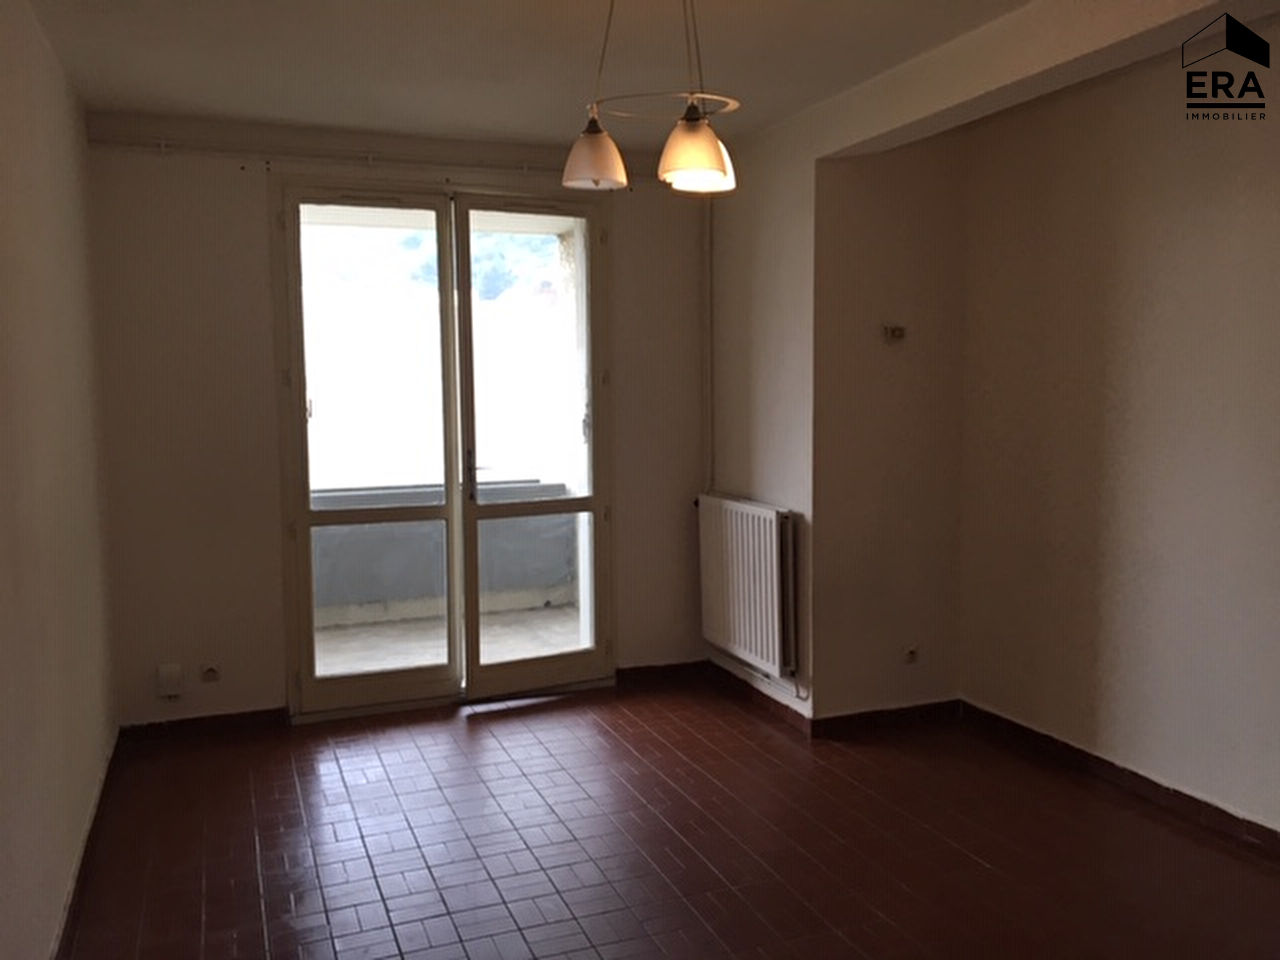 A LOUER CAVAILLON APPARTEMENT T2 + PARKING